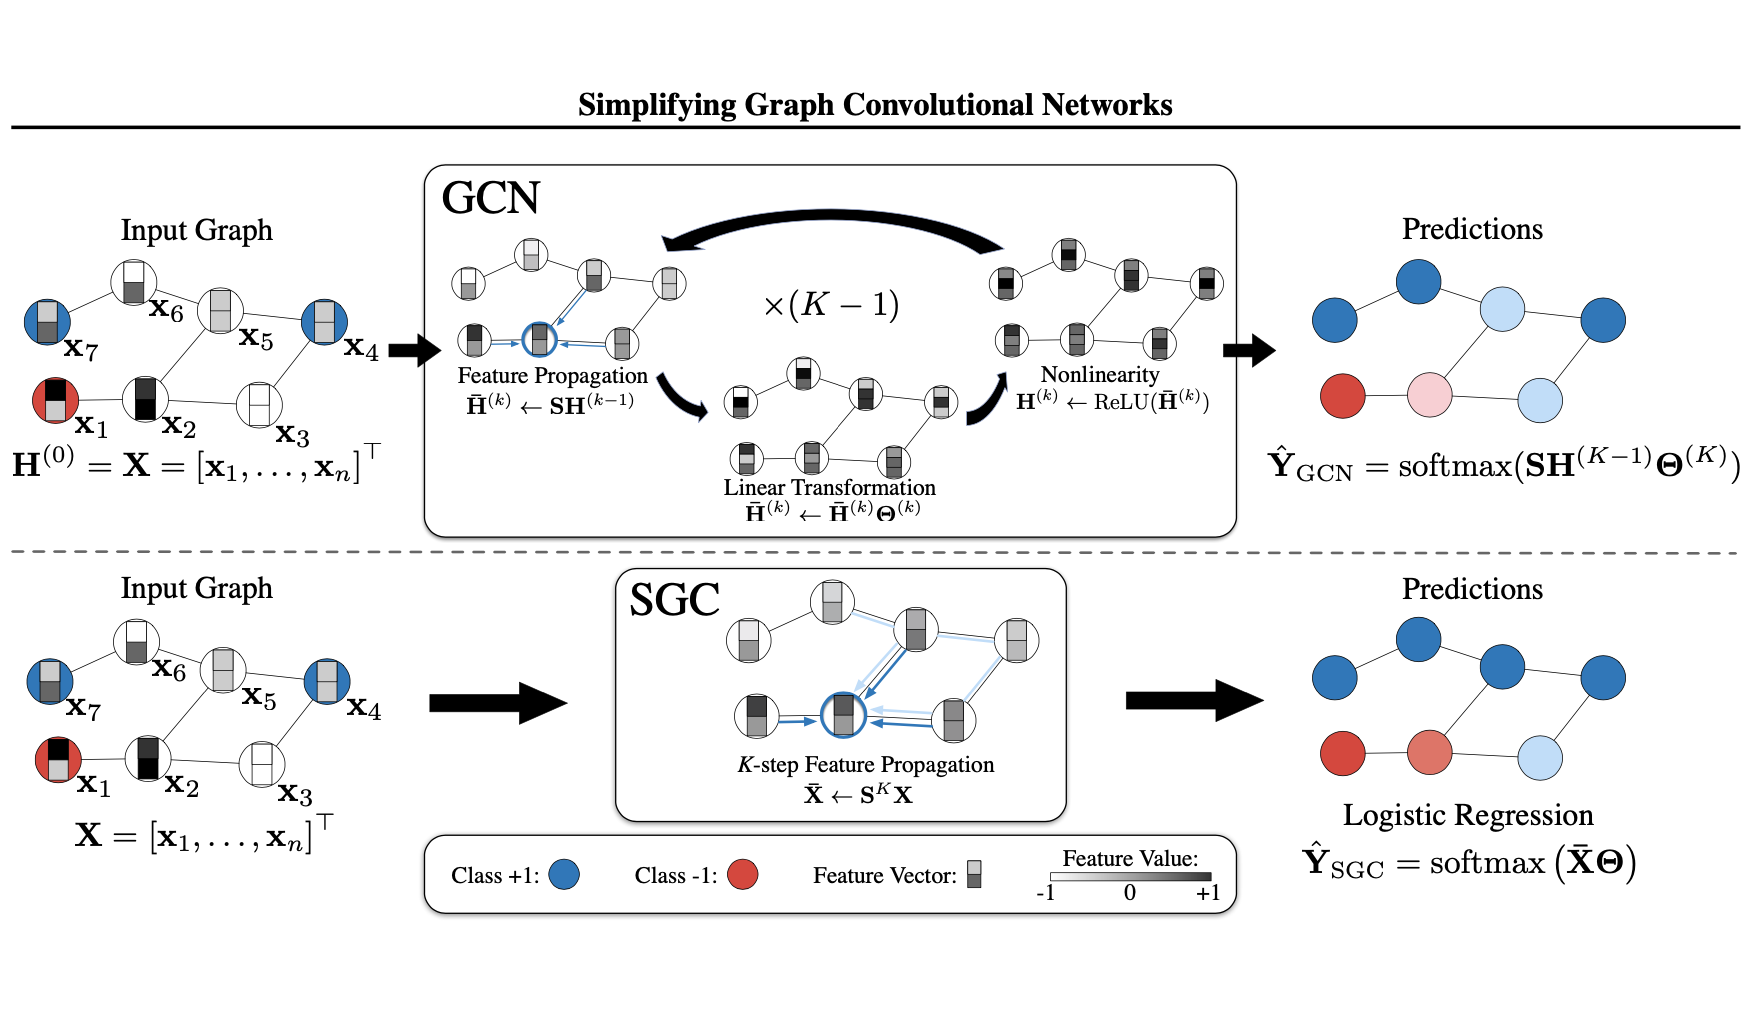 Simplifying Graph Convolutional Networks